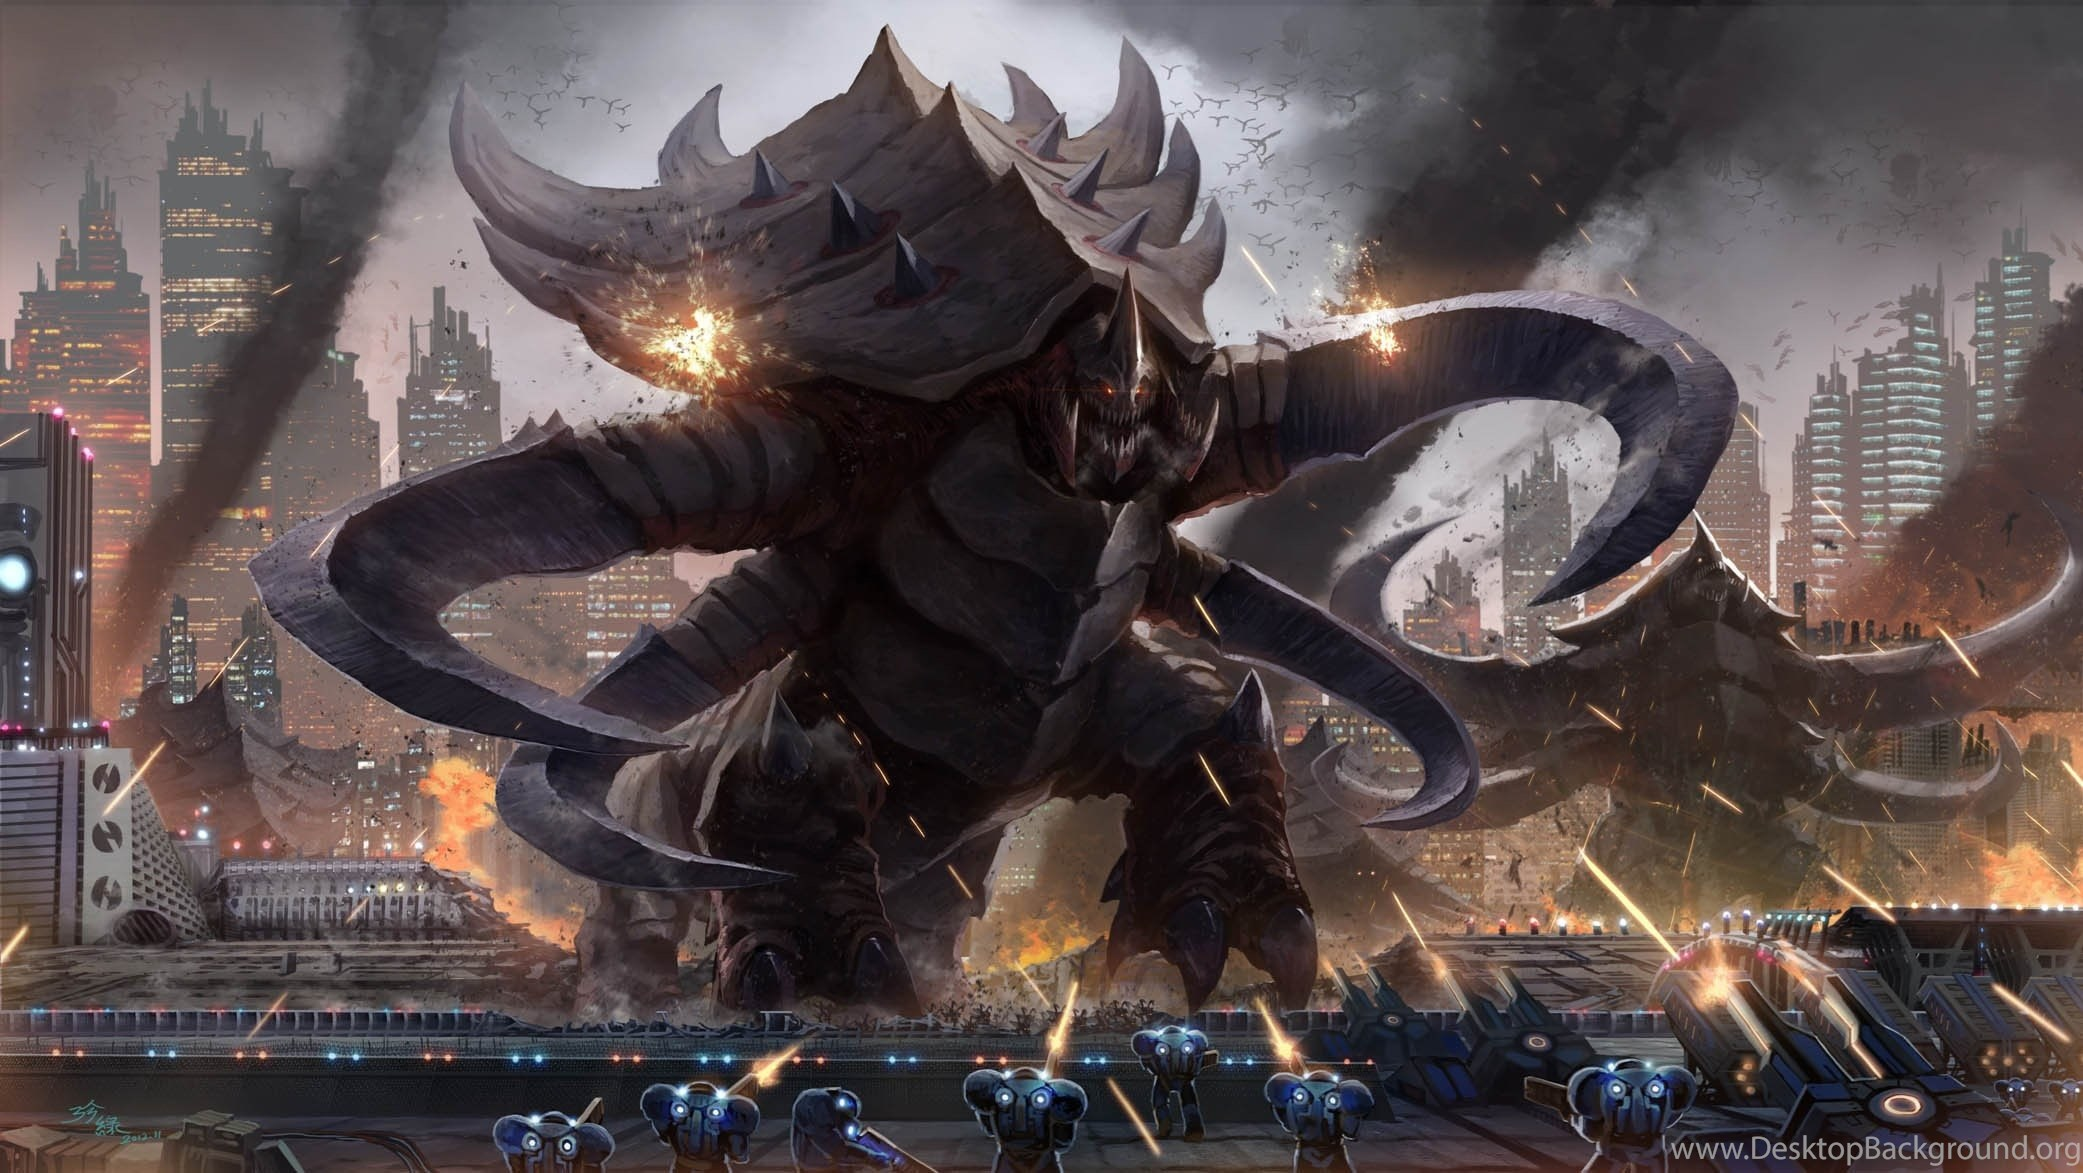 StarCraft, Zerg, Terran, Ultralisk, StarCraft II :: Wallpapers